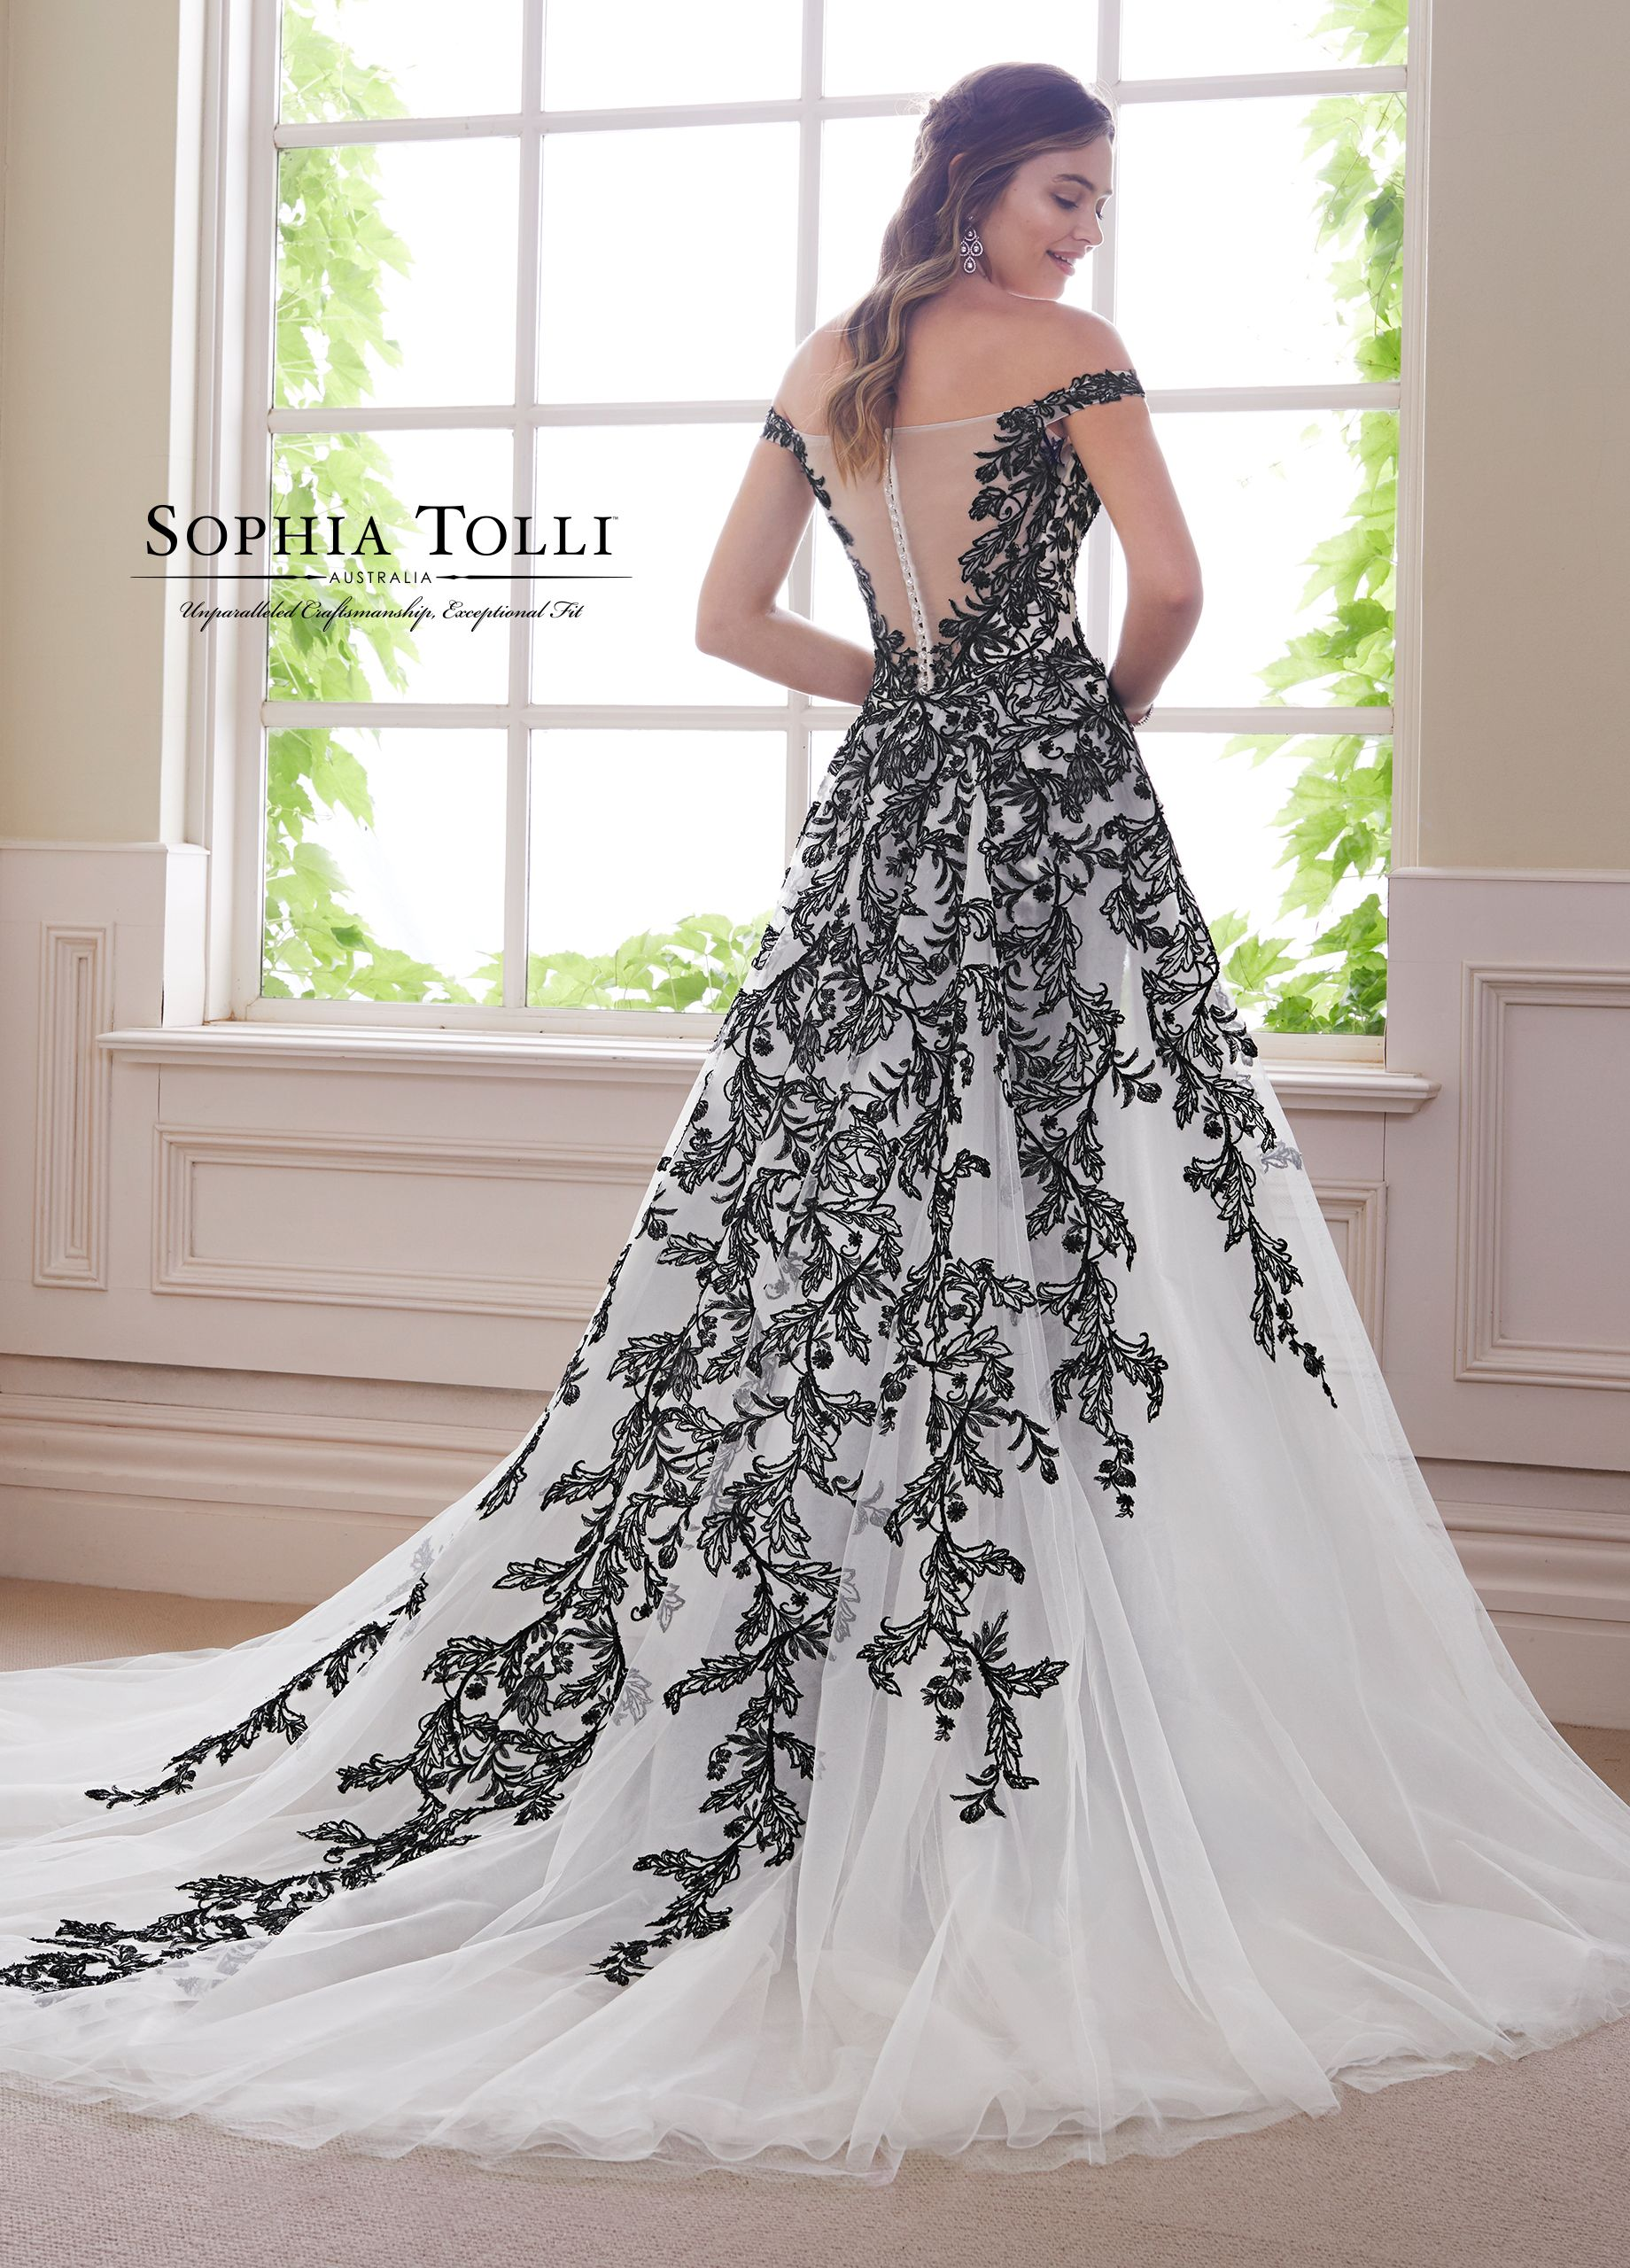 Sophia Tolli Obsidian Black Wedding Gowns Black Wedding Dresses Wedding Dresses Lace